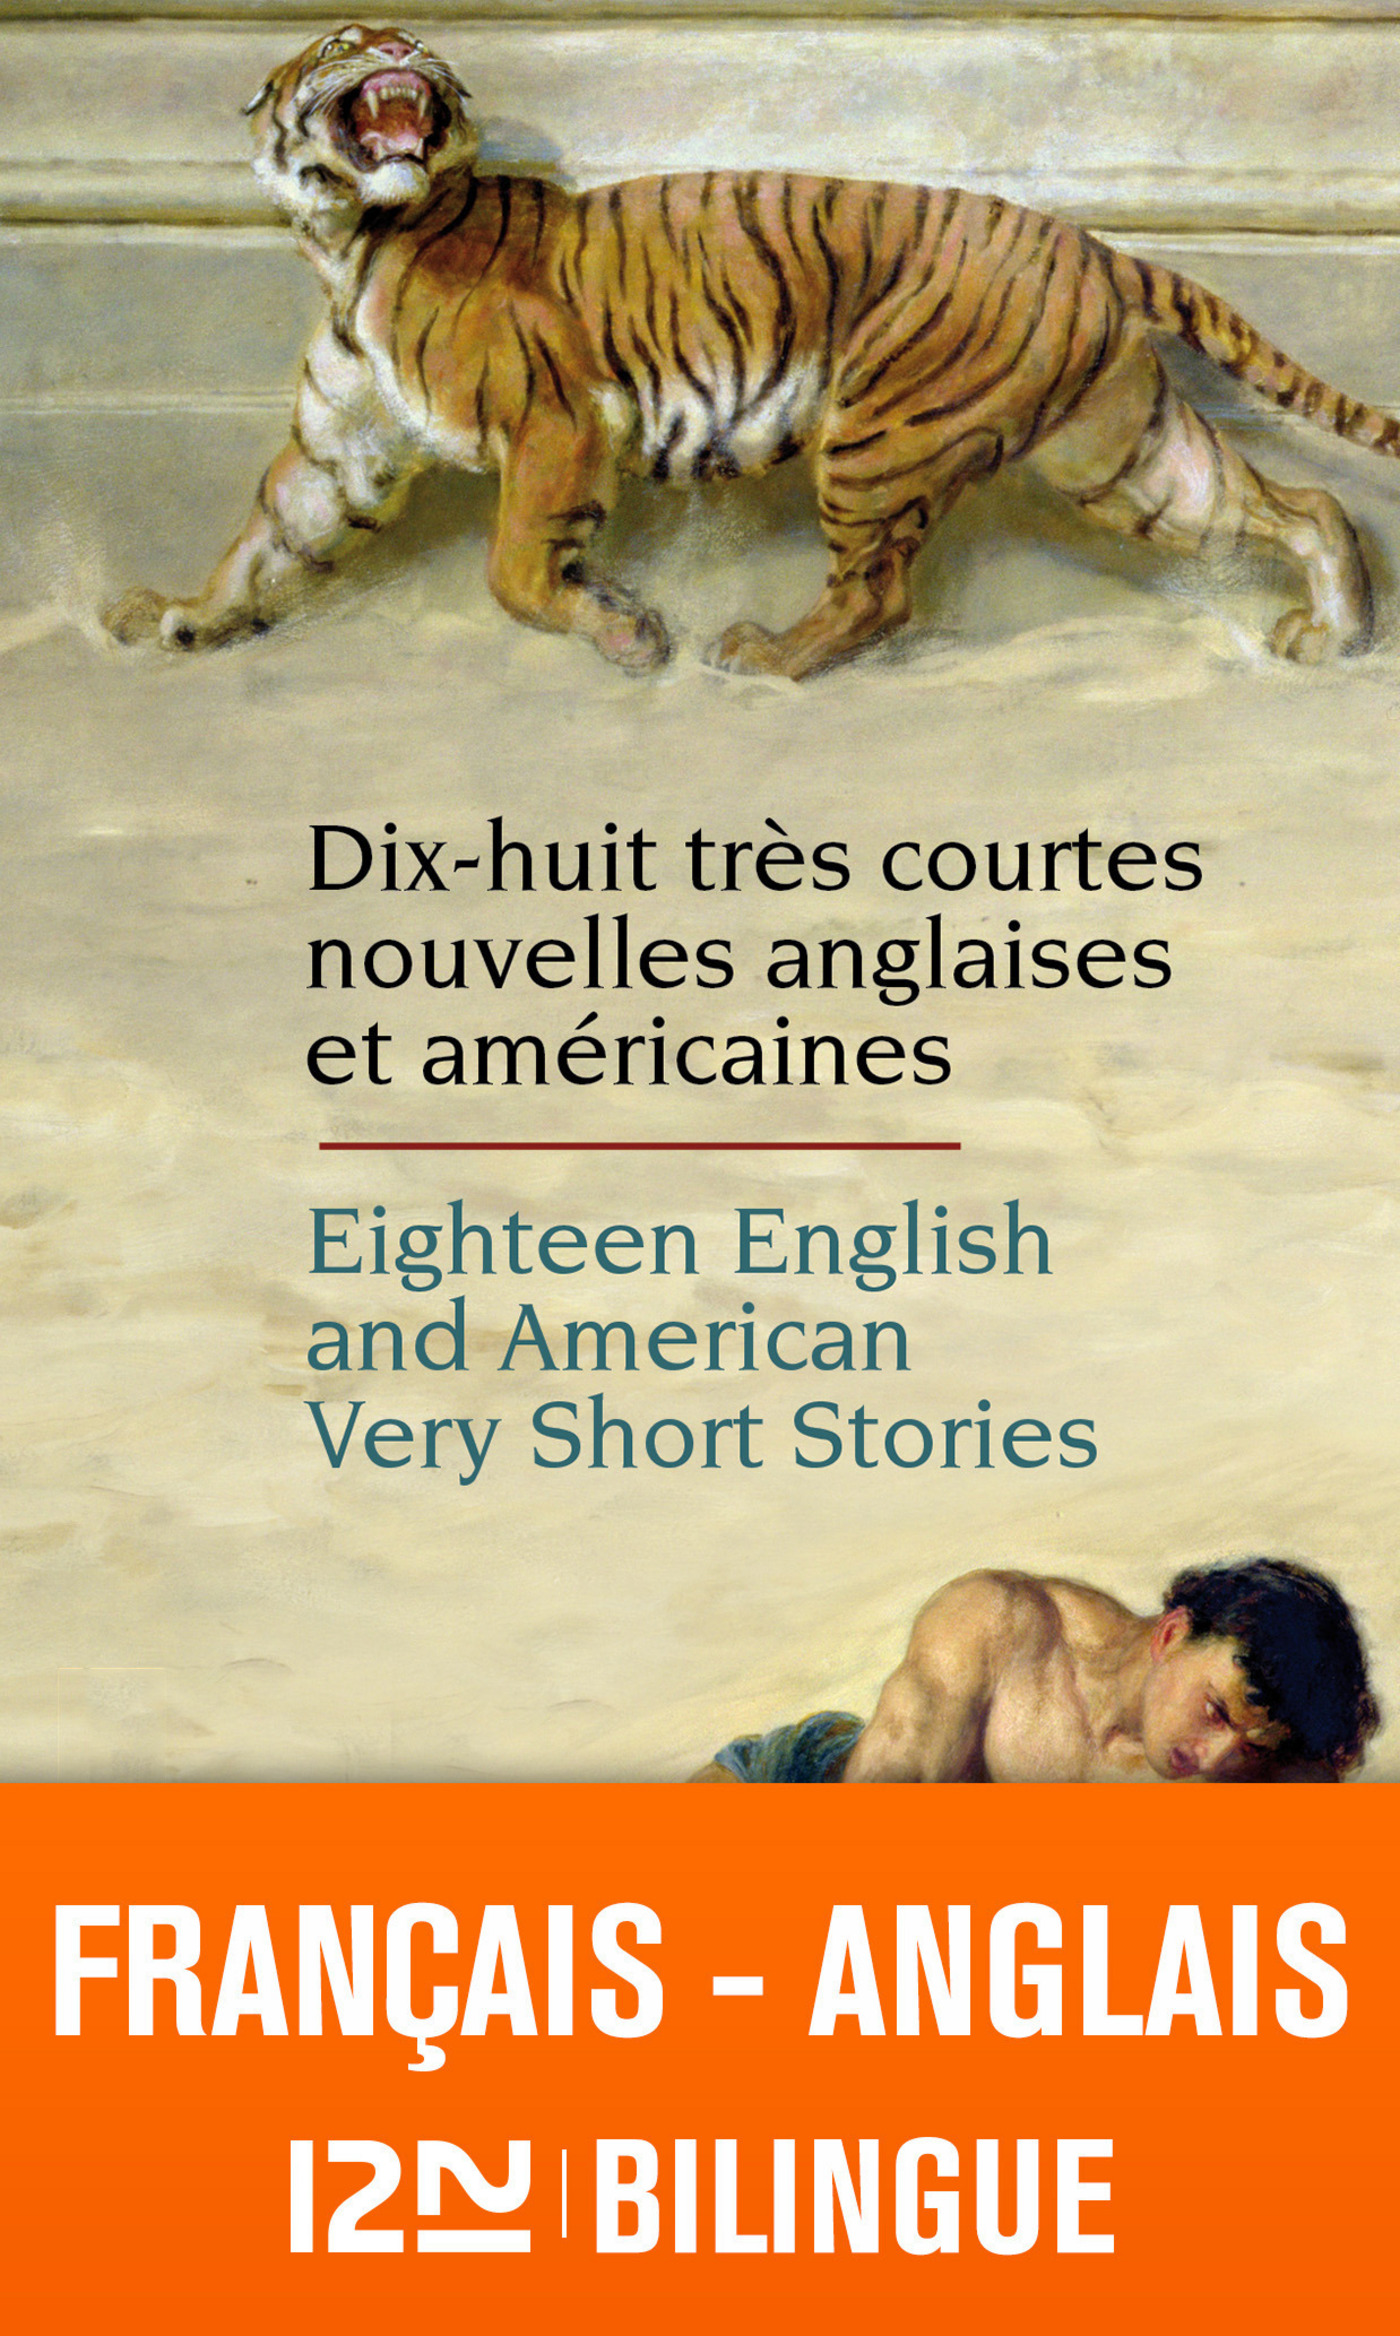 Bilingue français-anglais : 18 English and American Very Short Stories - 18 très courtes nouvelles a